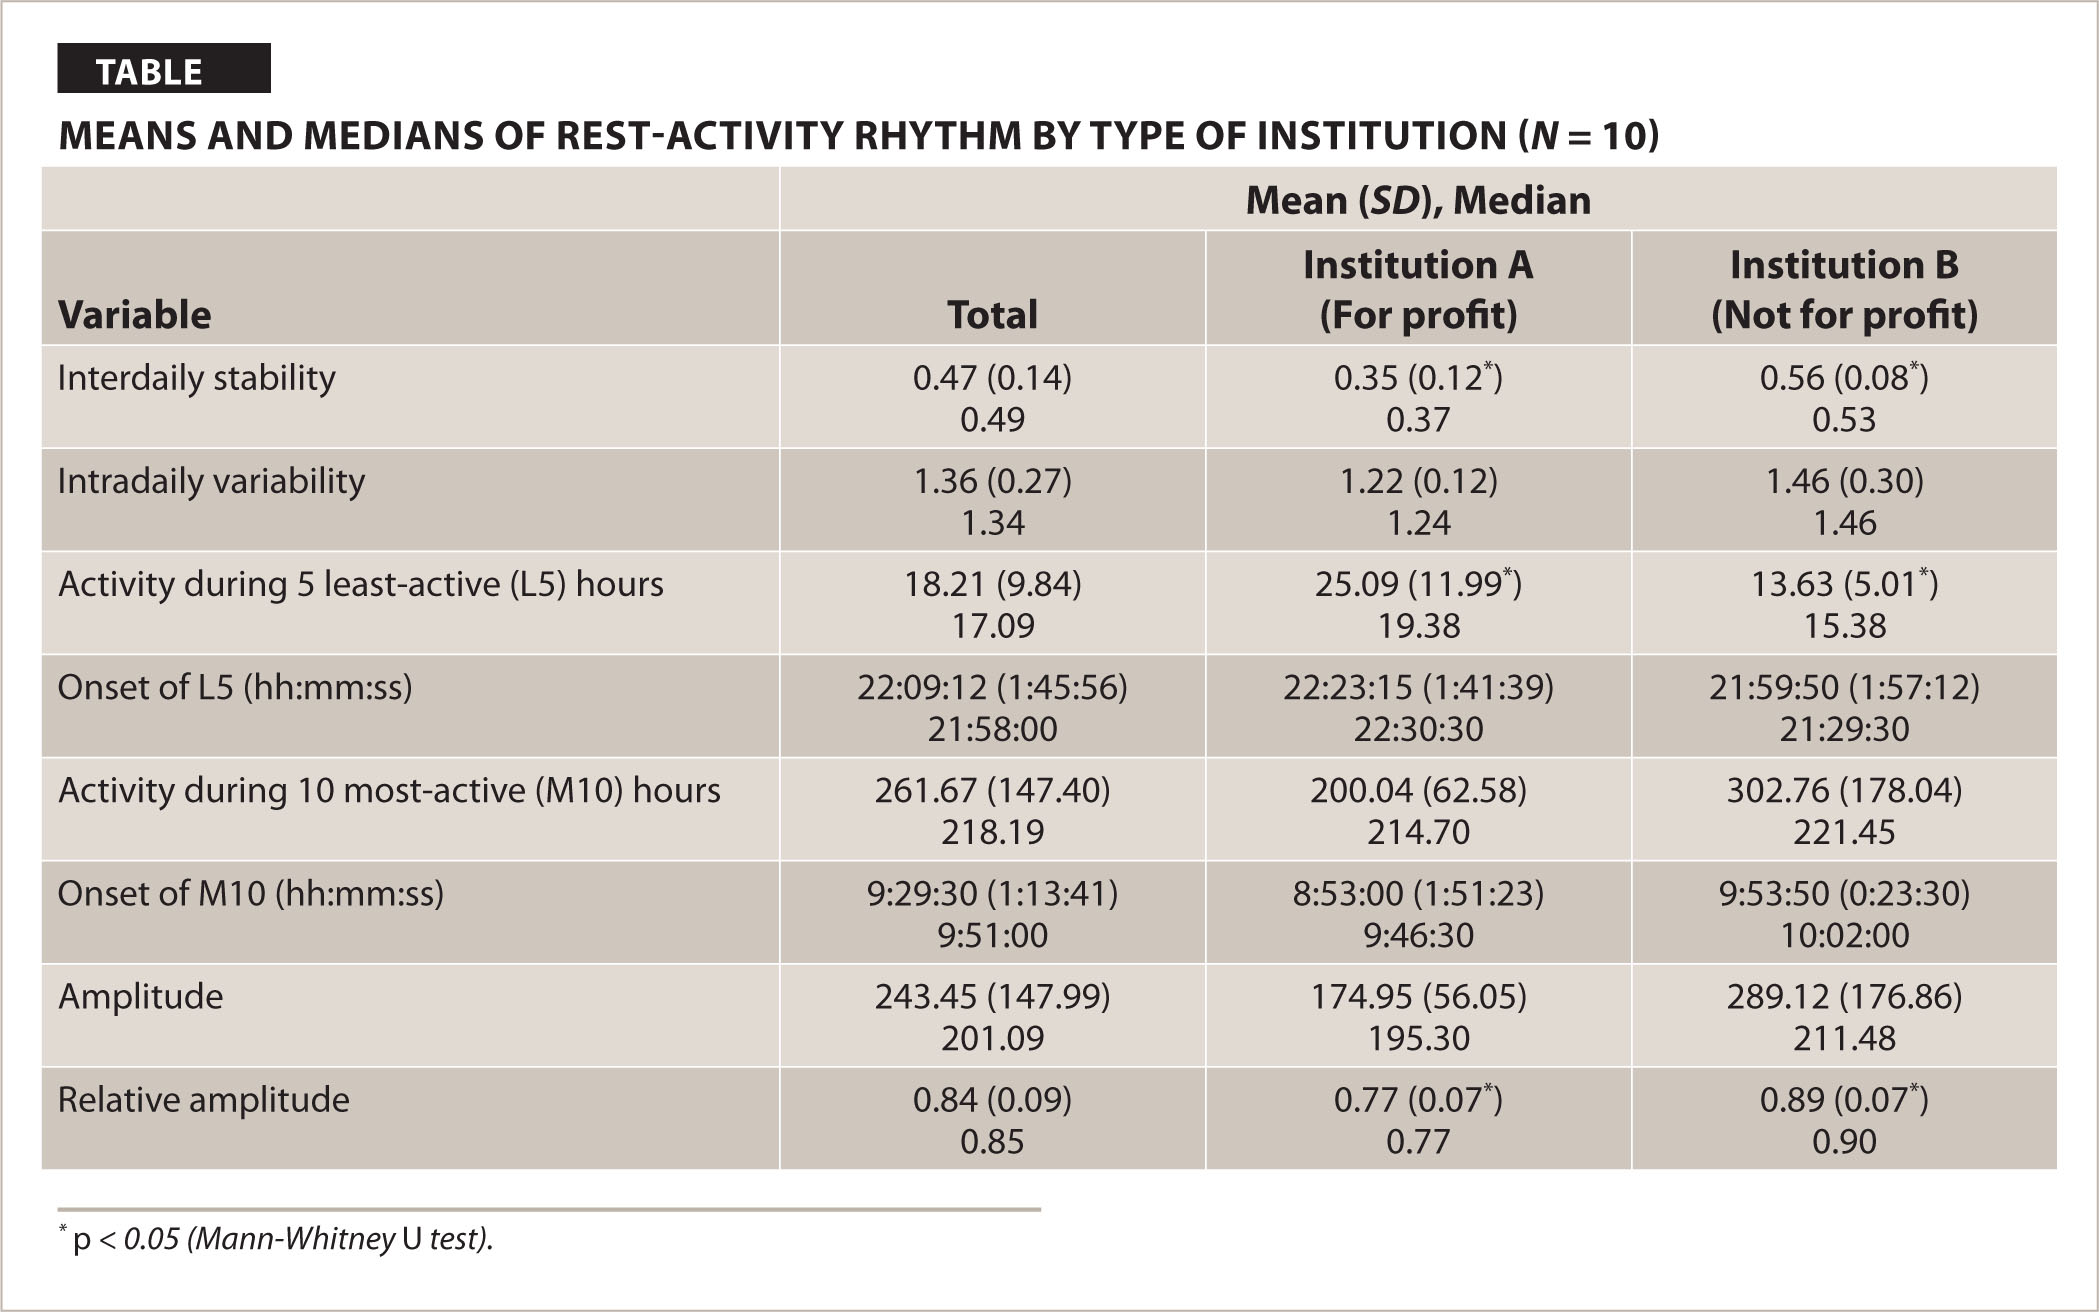 Means and Medians of Restfiactivity Rhythm by Type of Institution (N = 10)